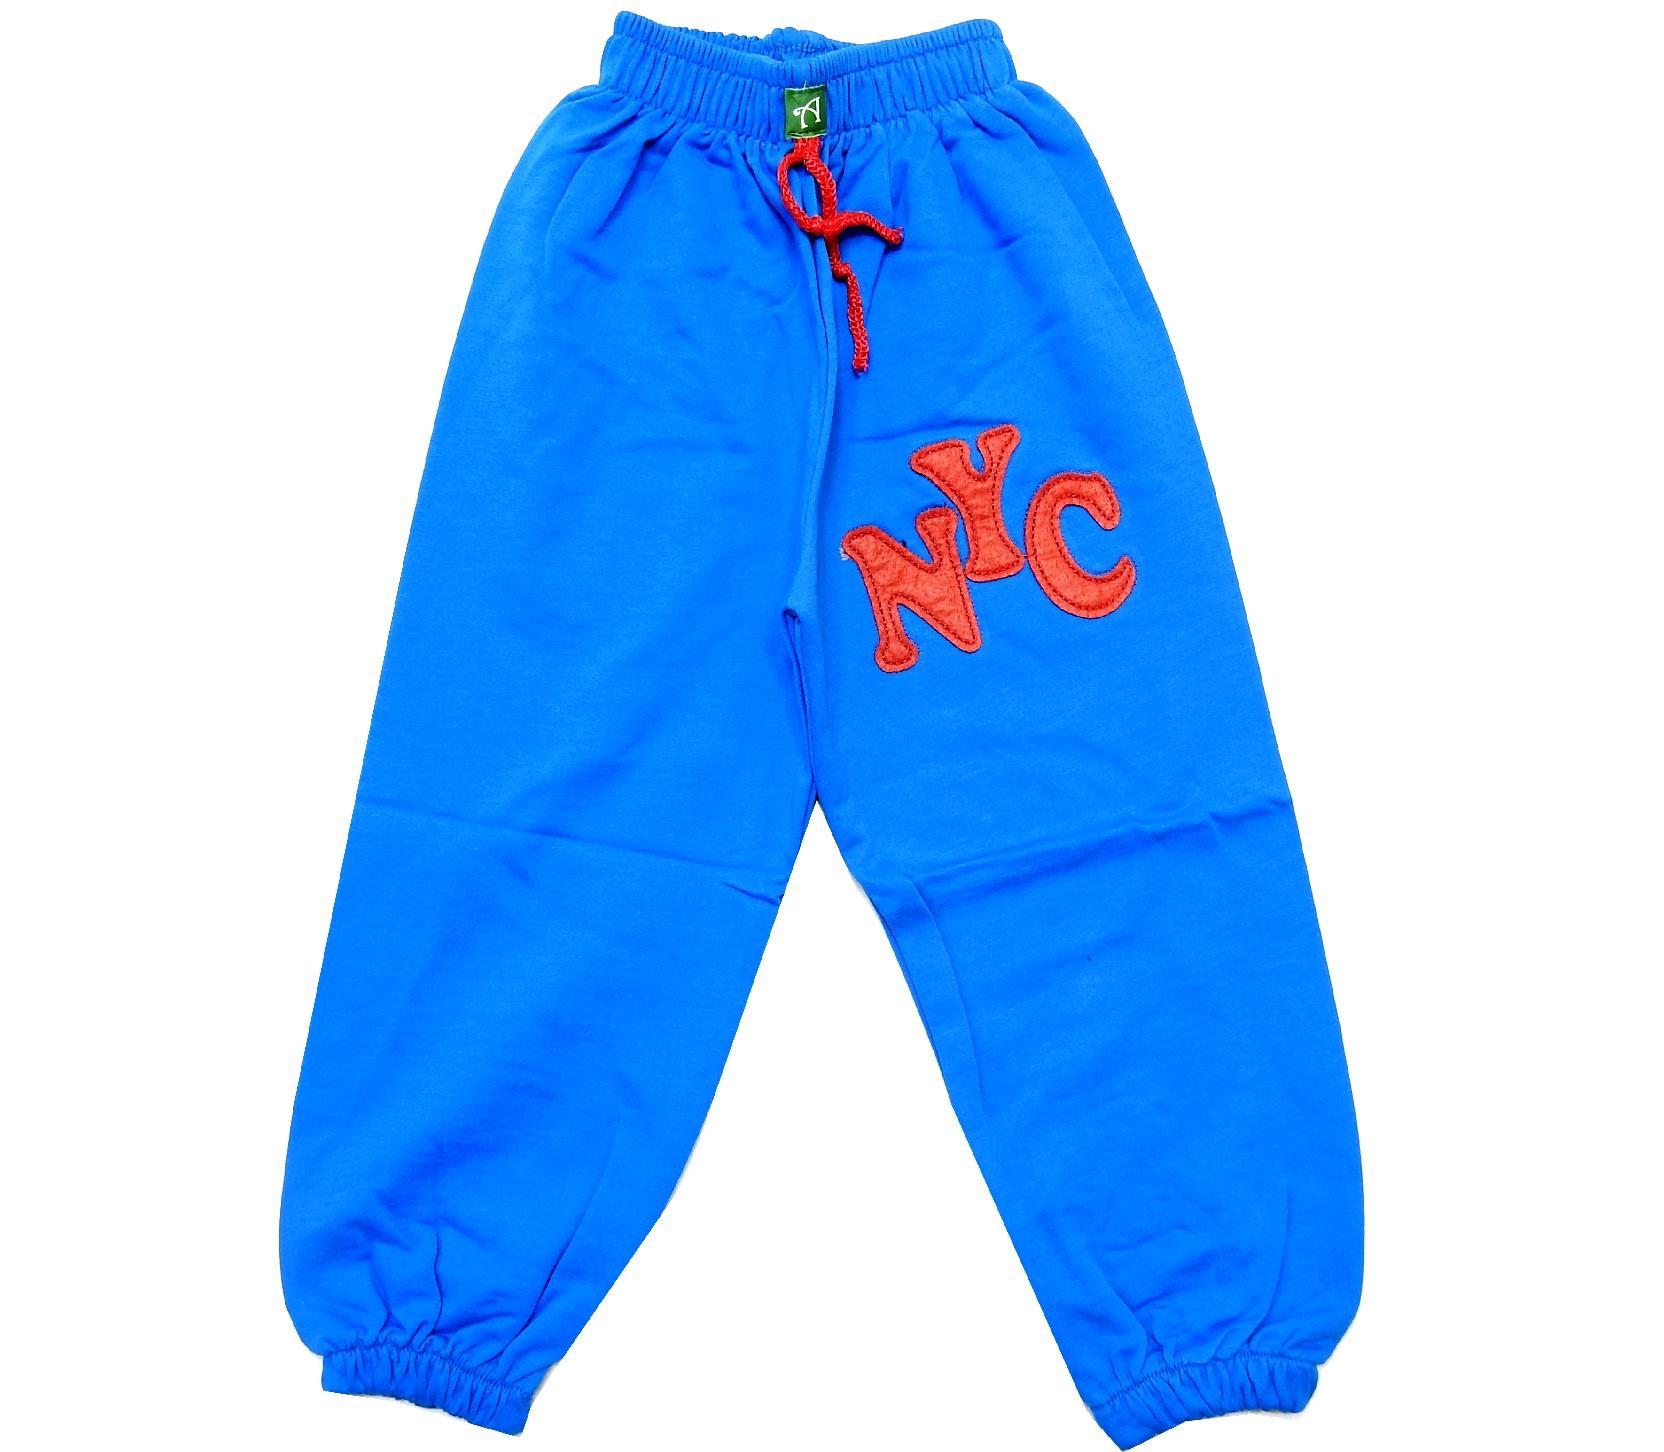 Wholesale NYC print trouser for kids (6-8-9-10-12-14 age)